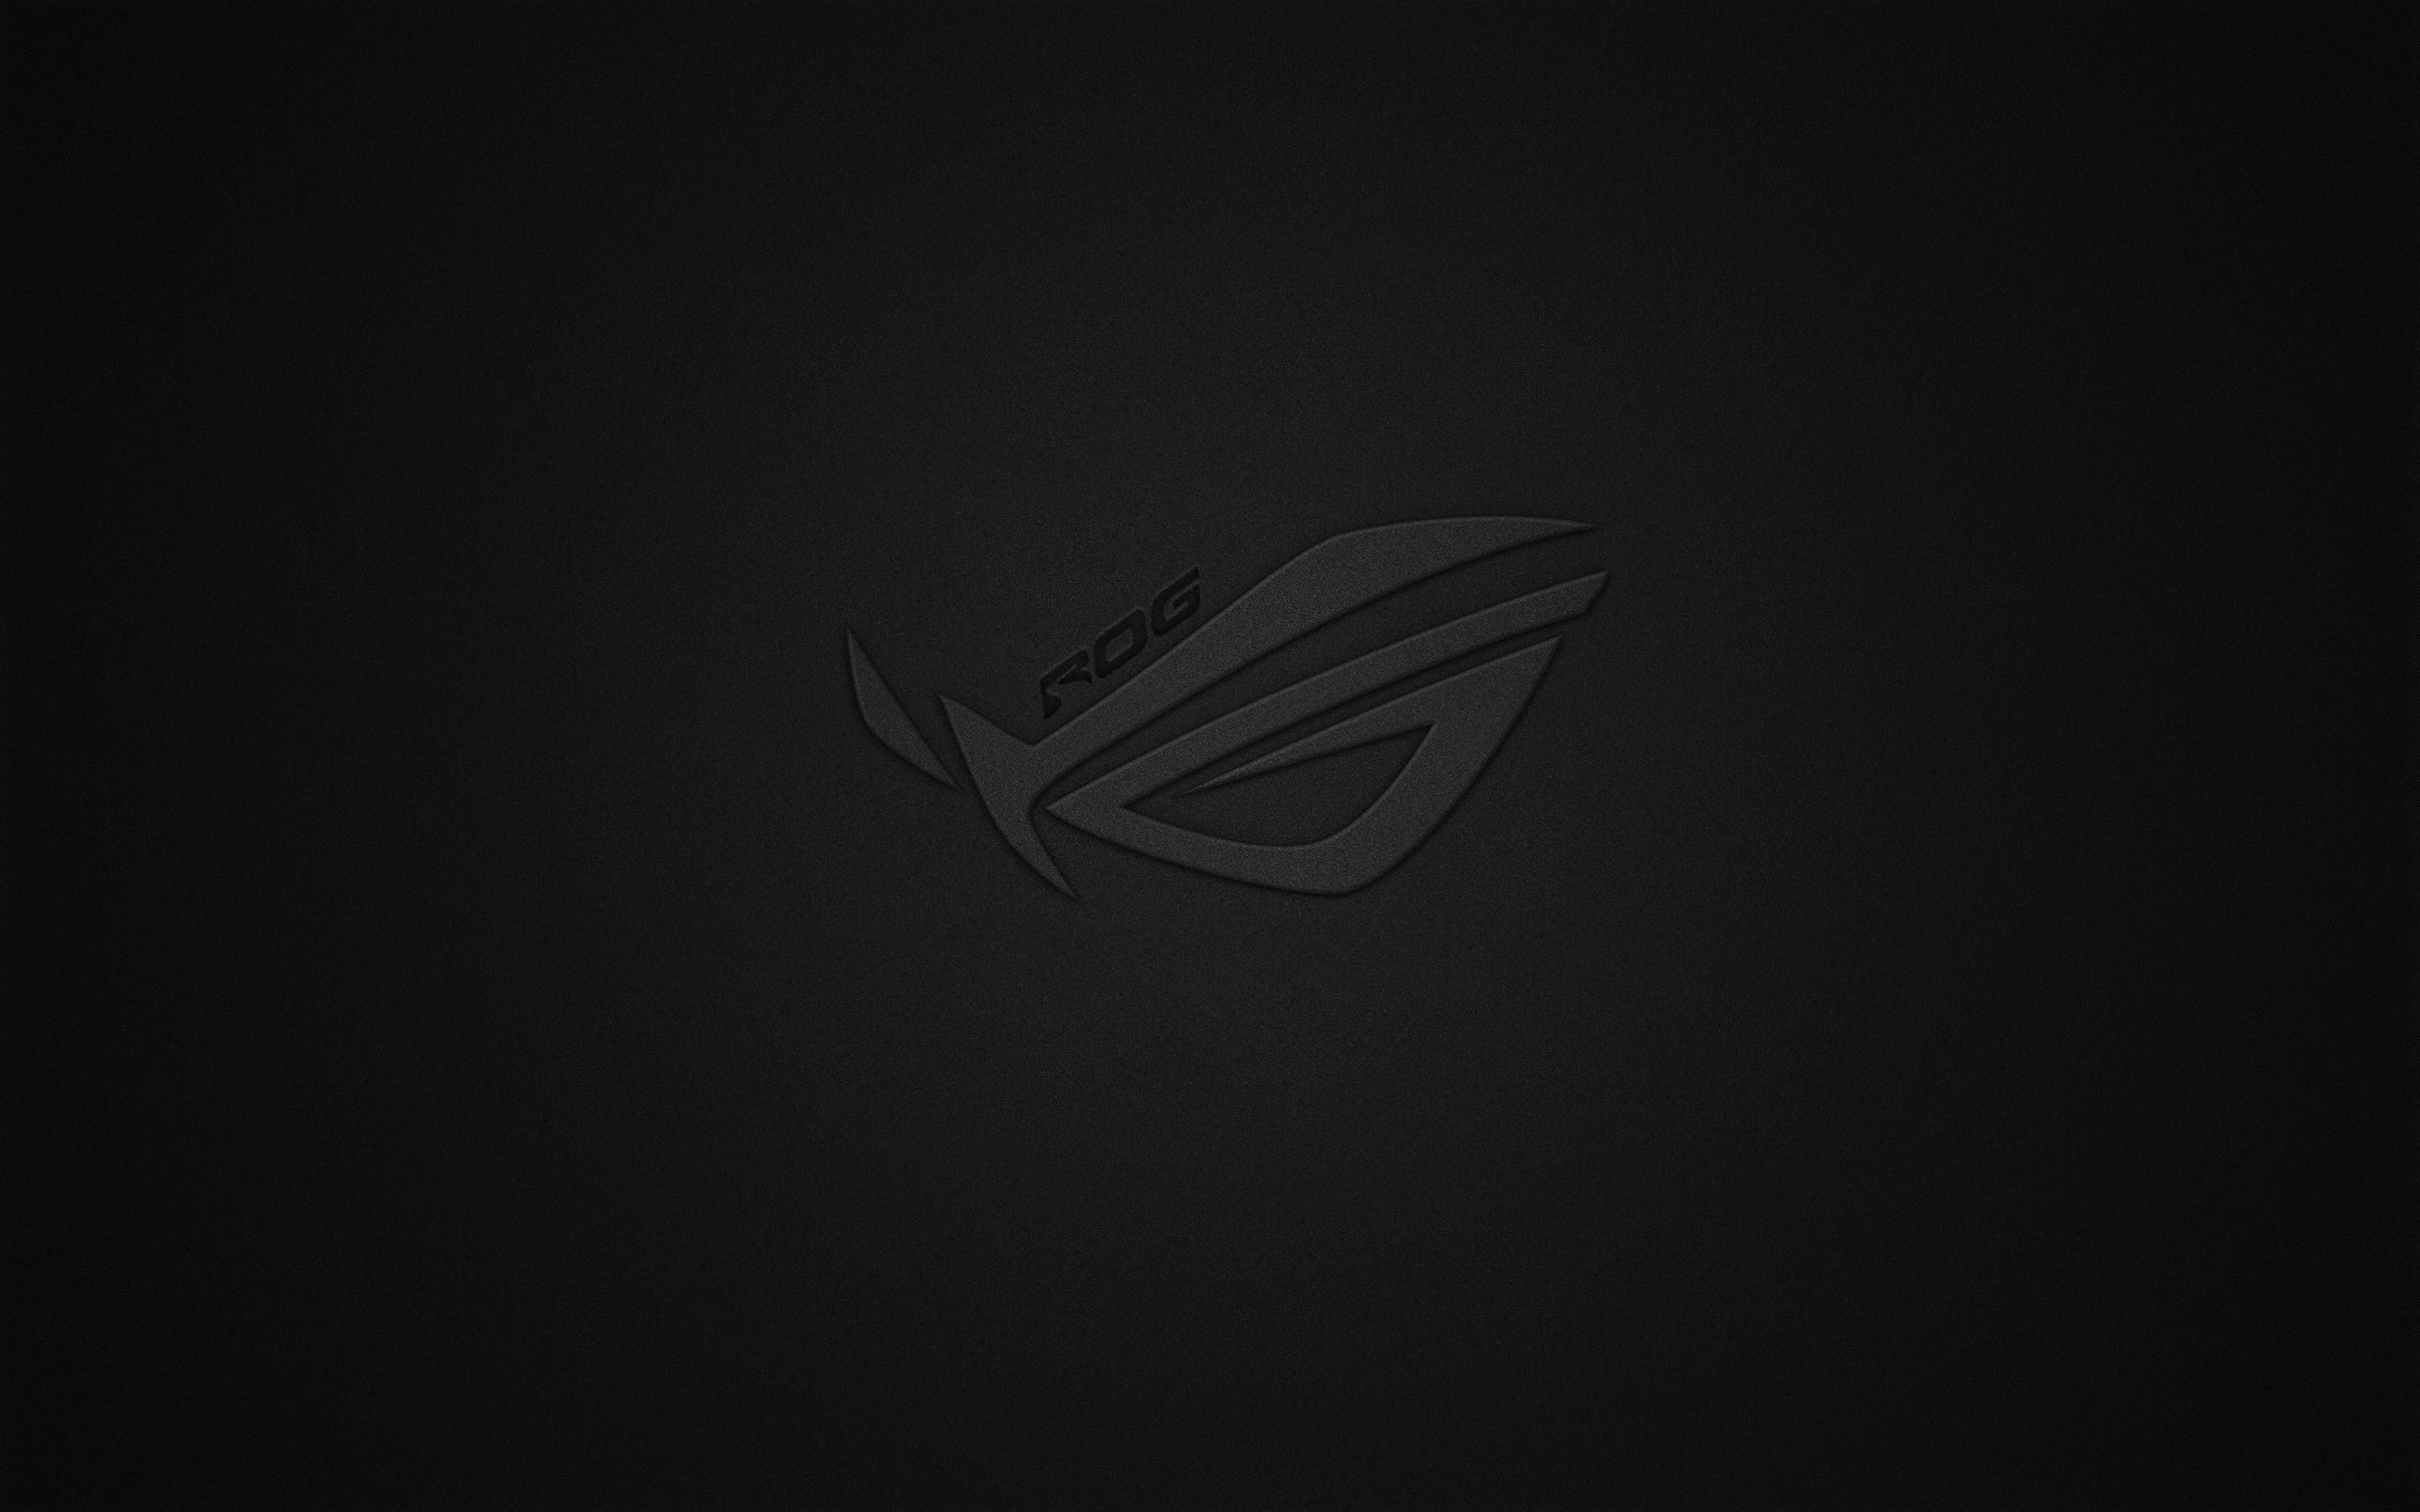 Unduh 2000+ Wallpaper Asus Rog Gaming  Terbaru